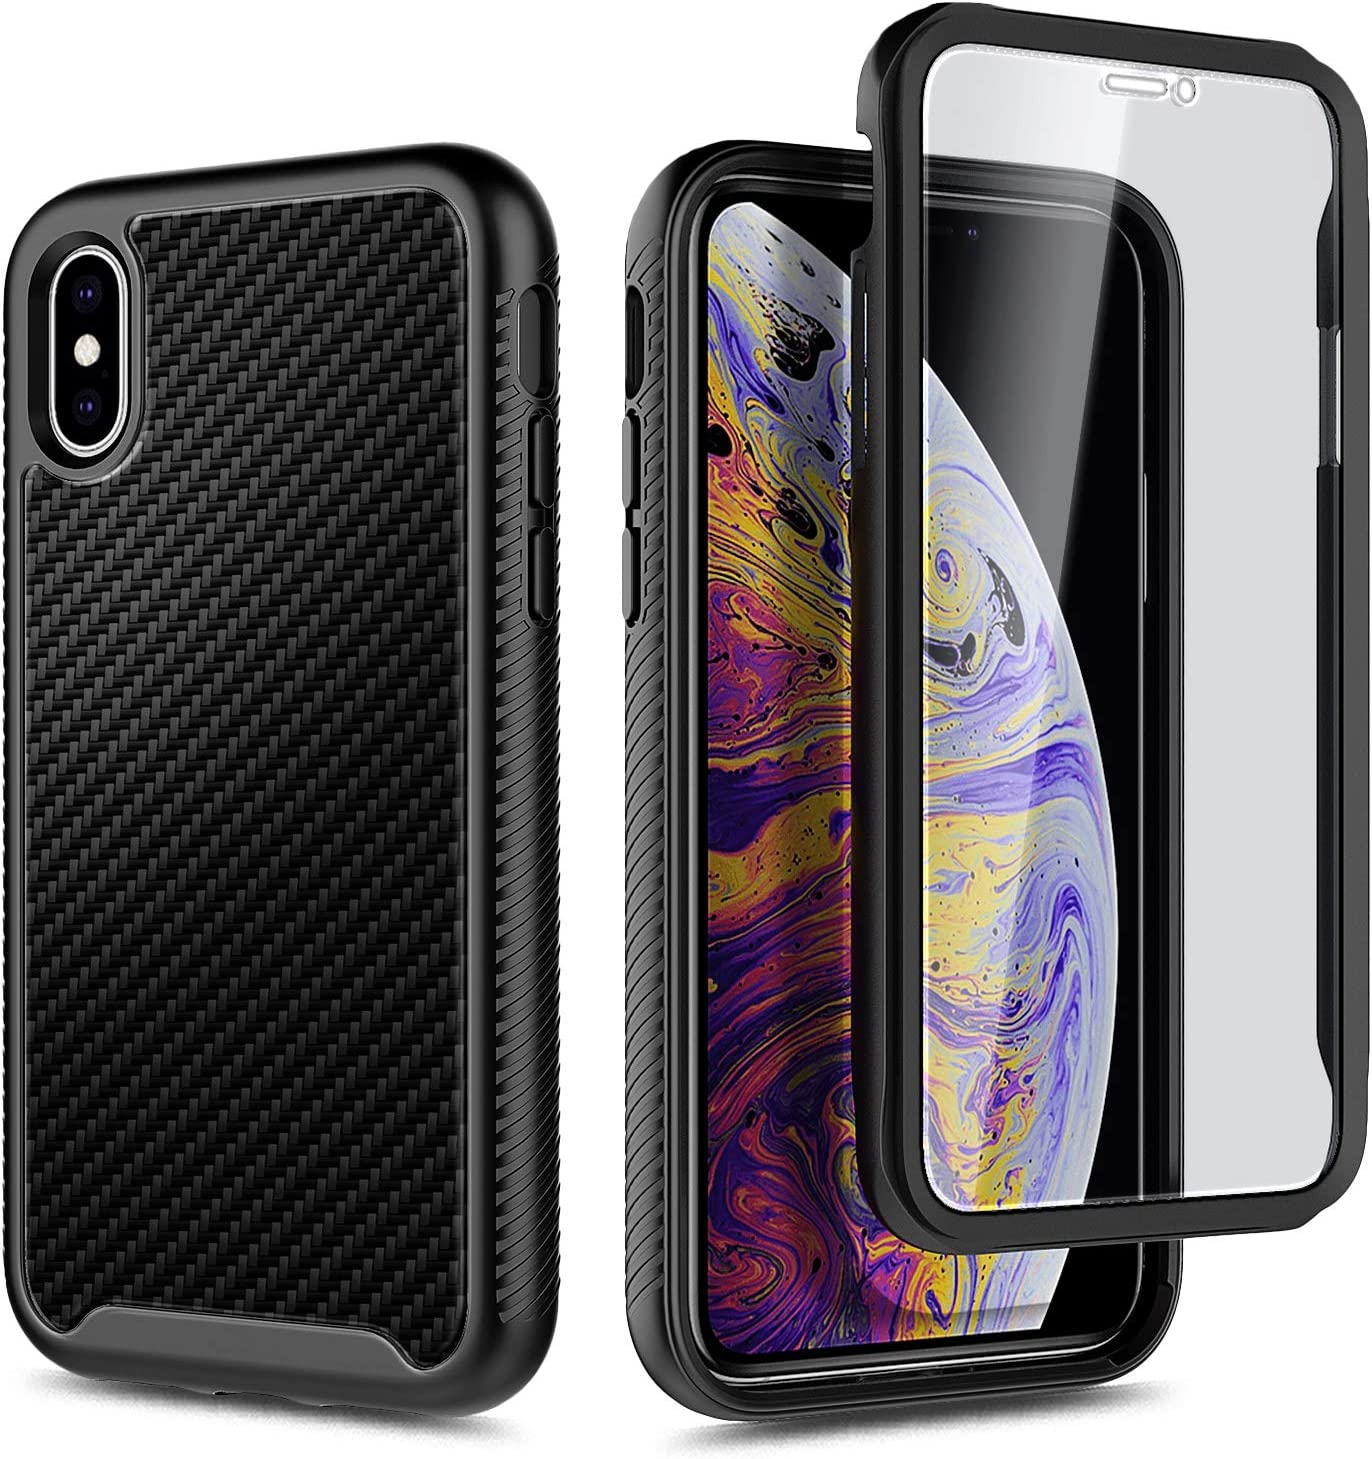 E-Began Case for iPhone Xs Max Shockproof Durable Phone Case Support Wireless Charging Full-Body Protective Rugged Black Bumper Cover with Built-in Screen Protector 6.5 inch 2018 -Carbon Fiber